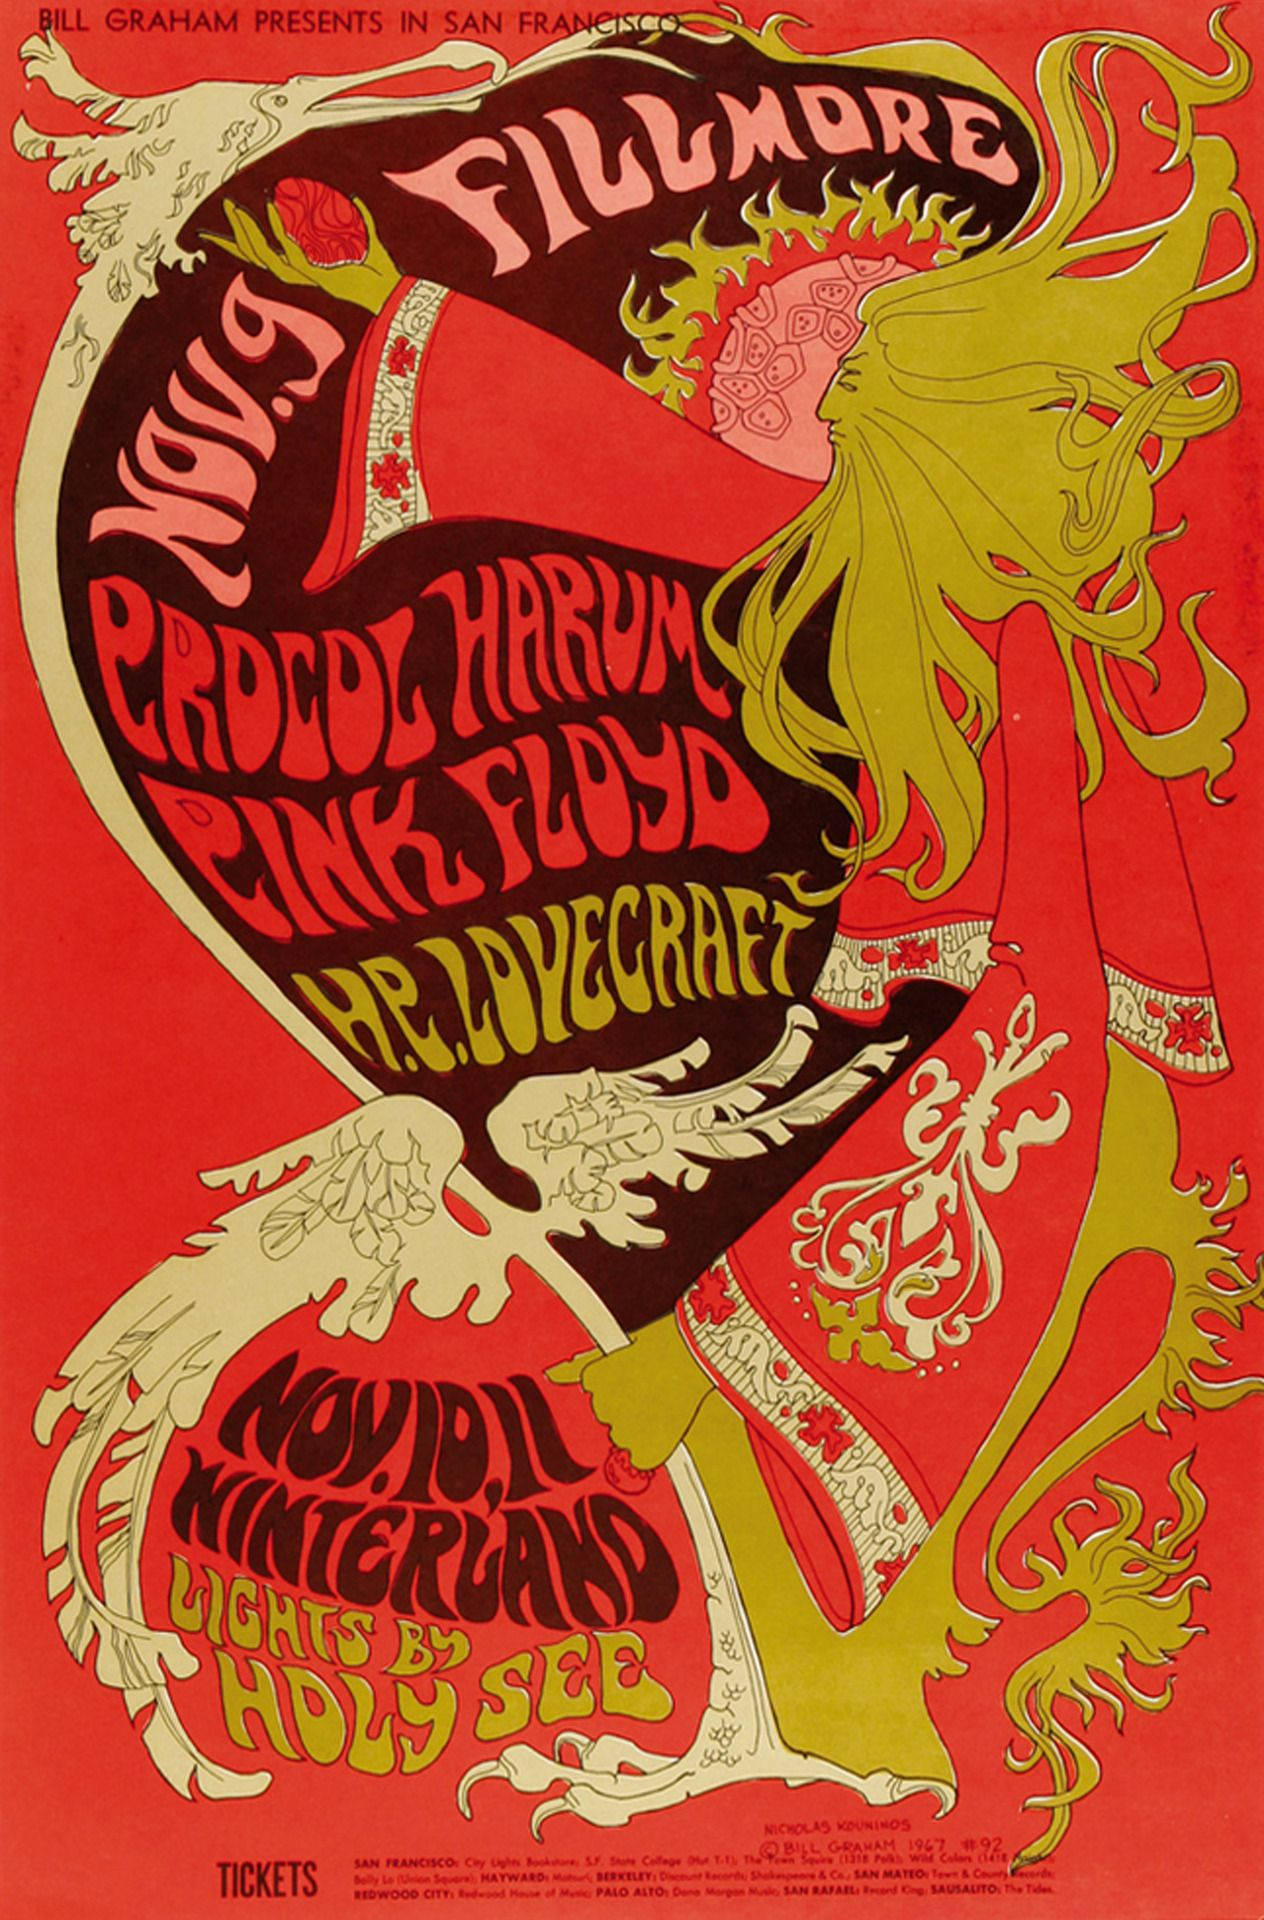 Poster design 60s - Find This Pin And More On 60 S Posters Illustrations By Jayzbagz